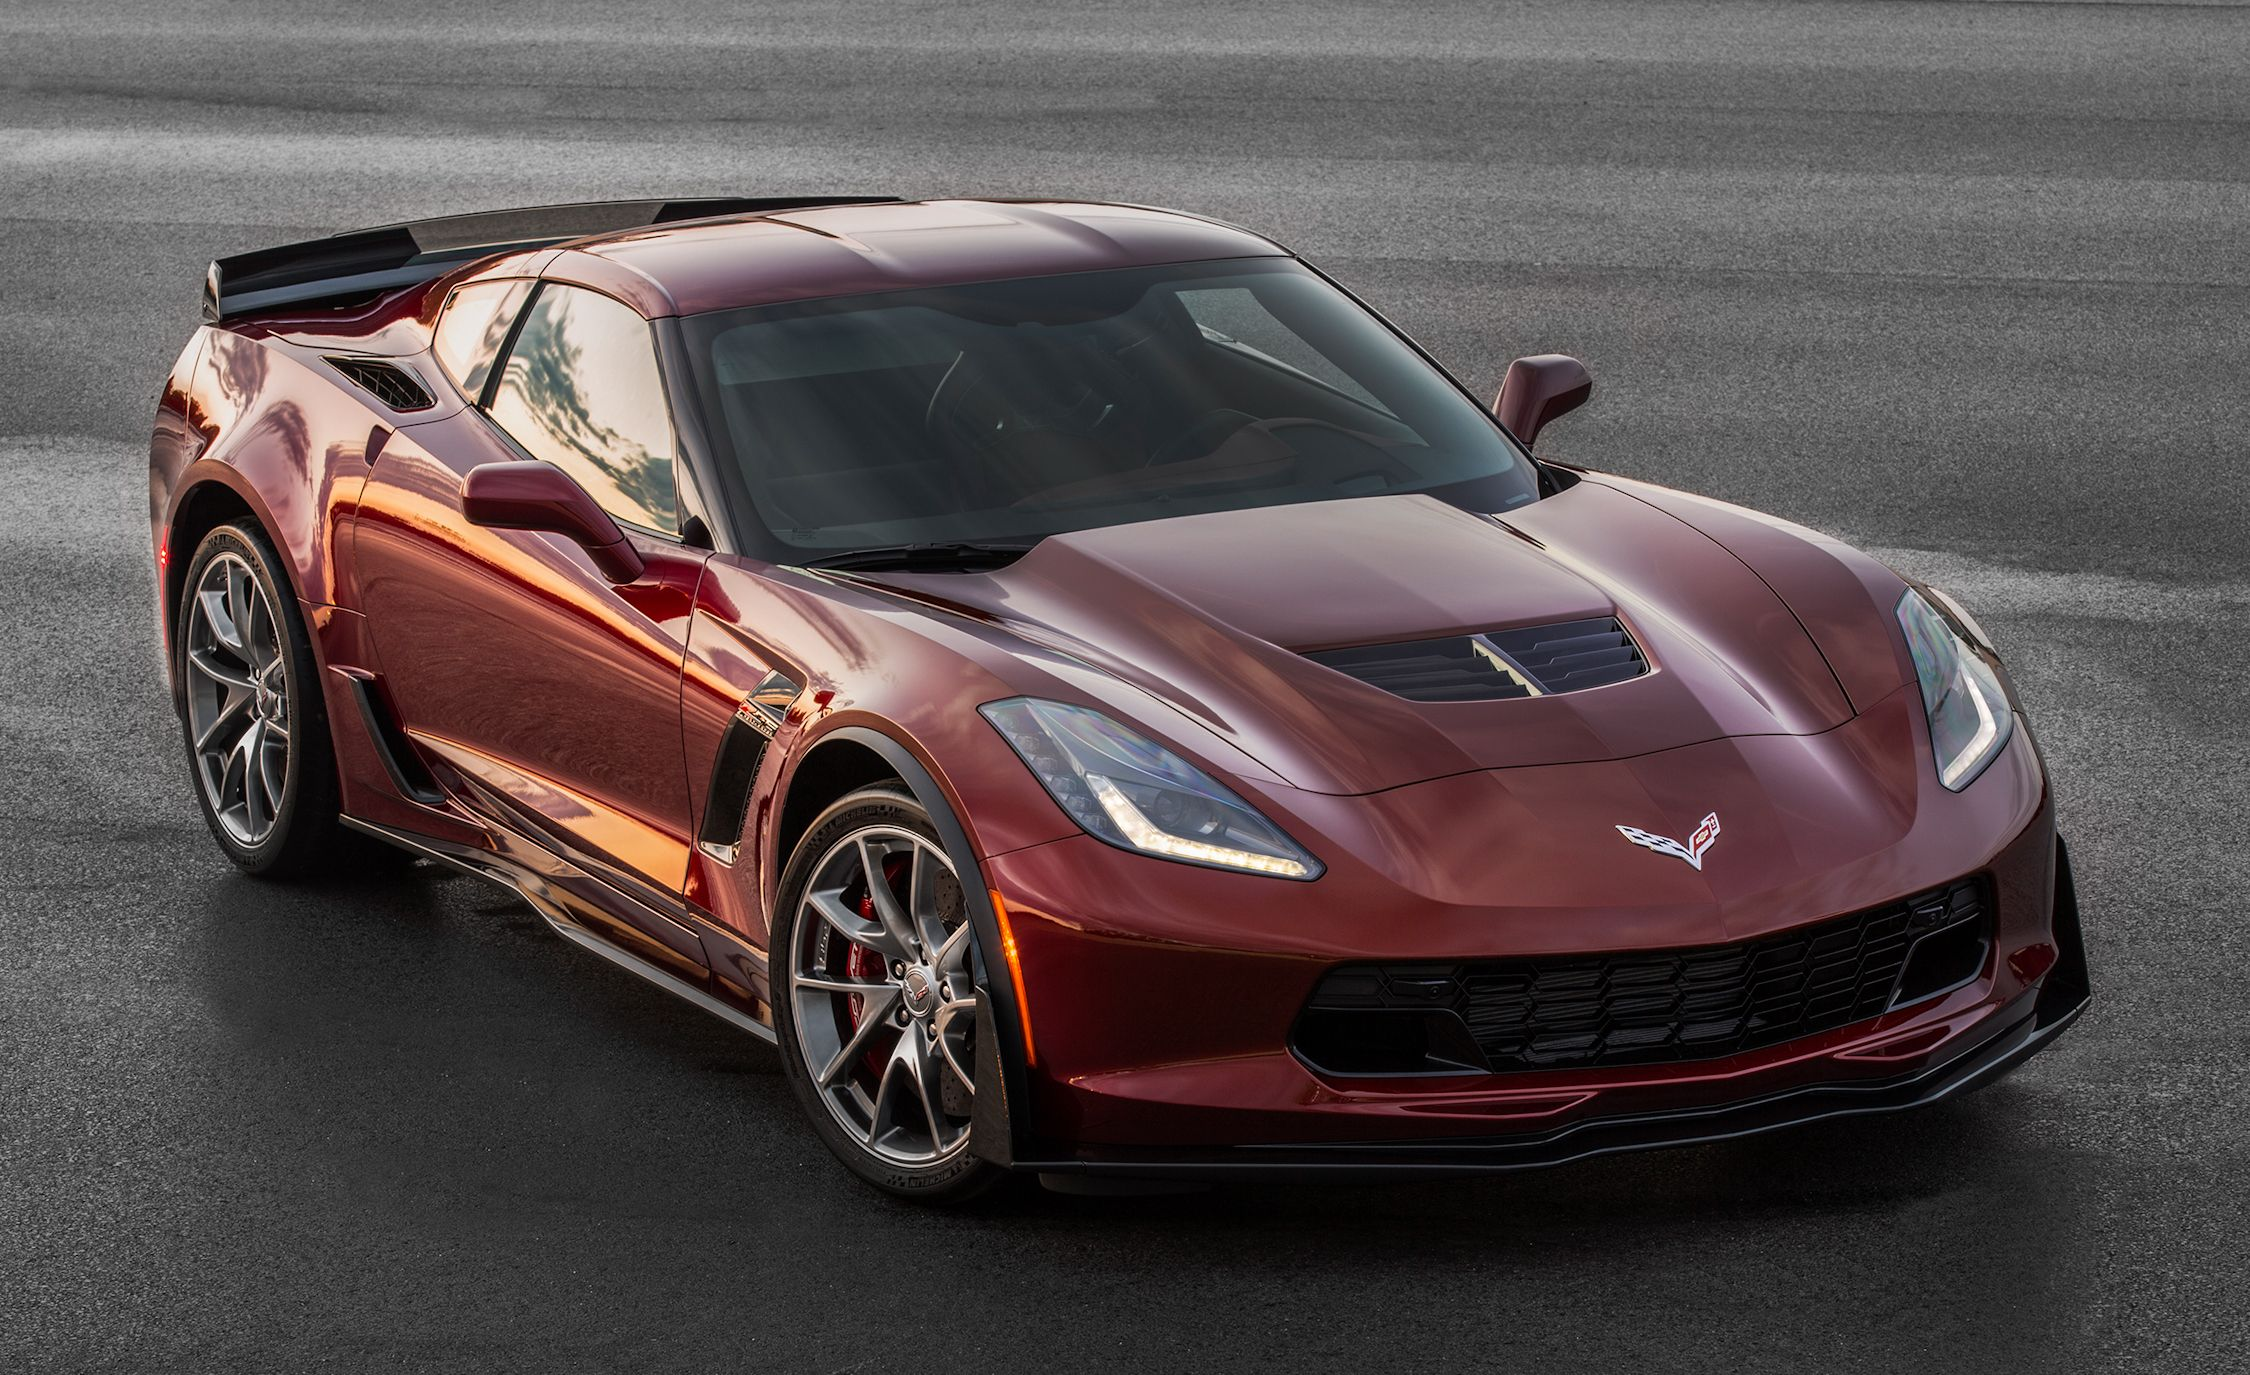 New car colors 2016 - Red Black And Blue 2016 Corvette And Z06 Offer New Design Packages